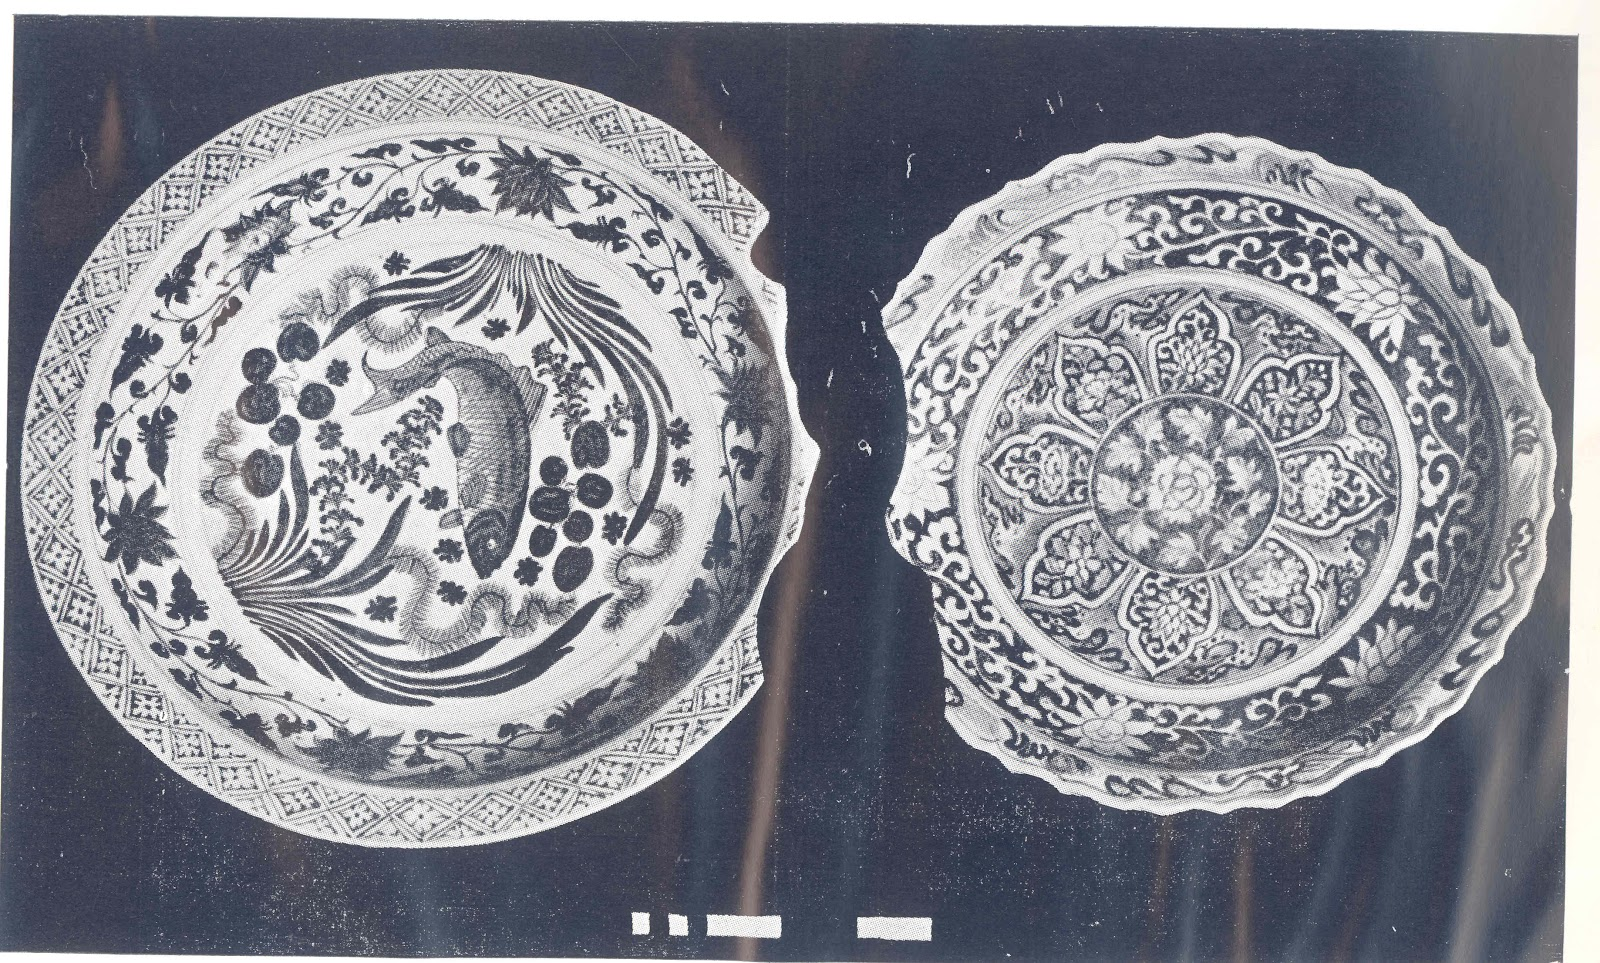 Chinese Porcelain: Buddhist Symbols on the Chinese Porcelain from